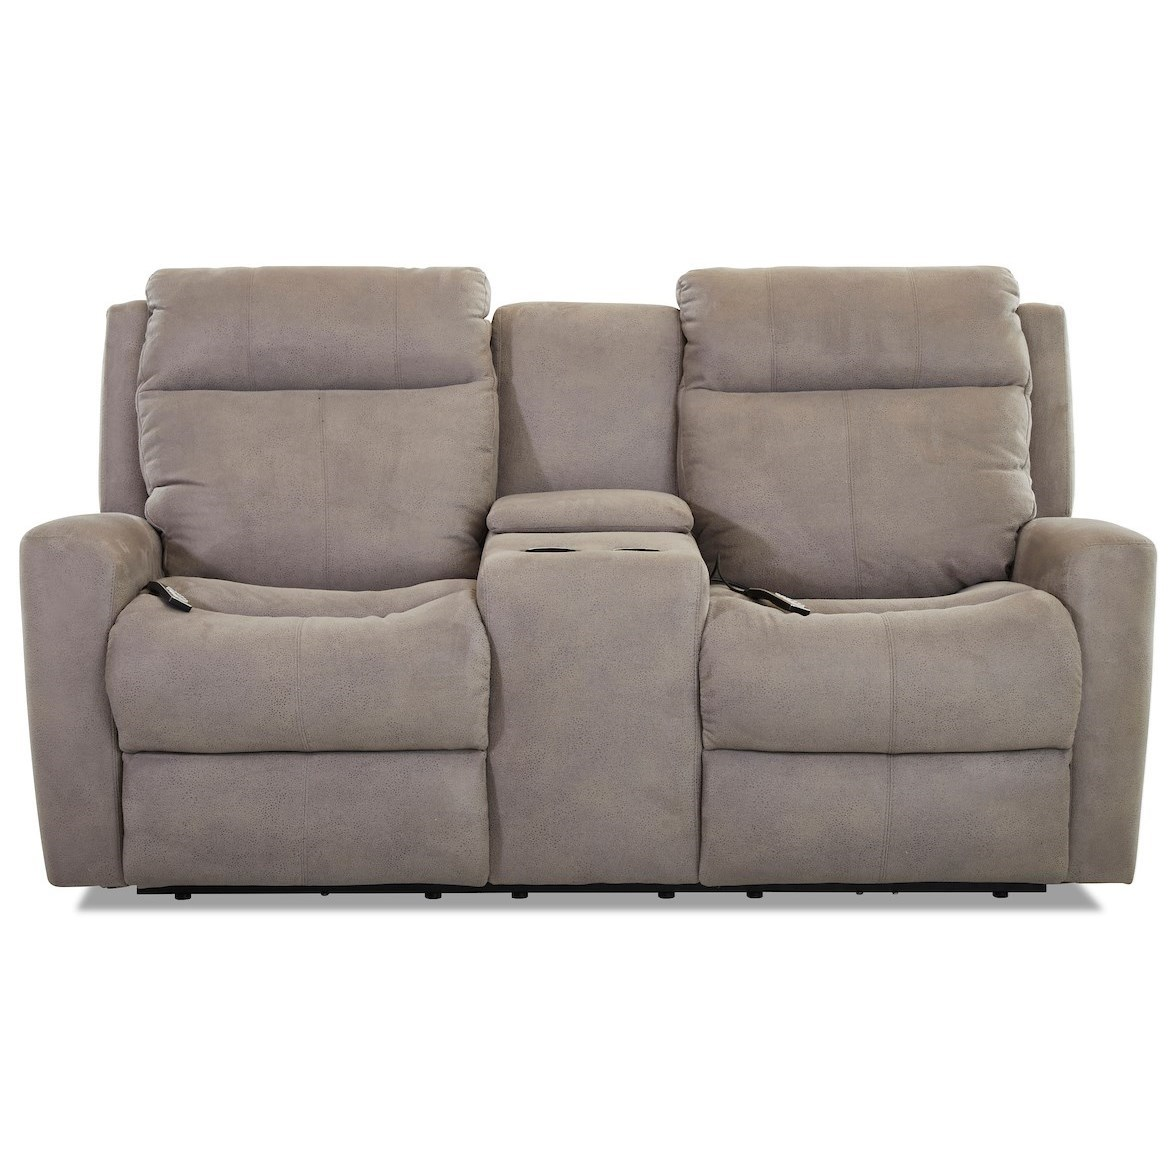 Brooks Reclining Loveseat w/console by Klaussner at Johnny Janosik